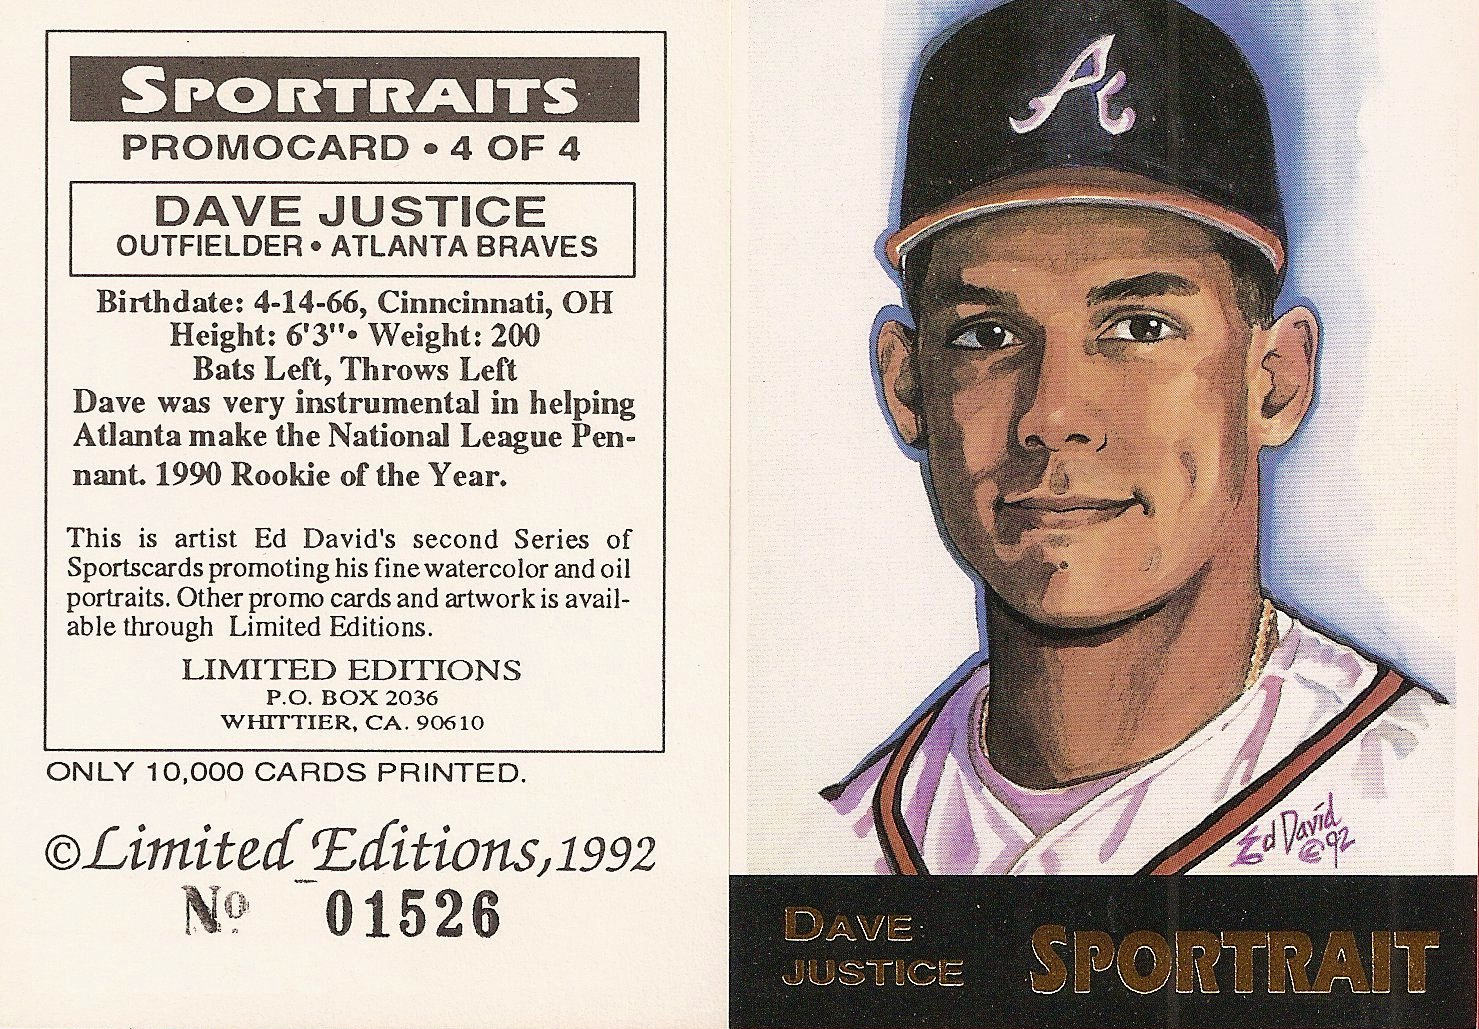 1992 Ed David Sportraits